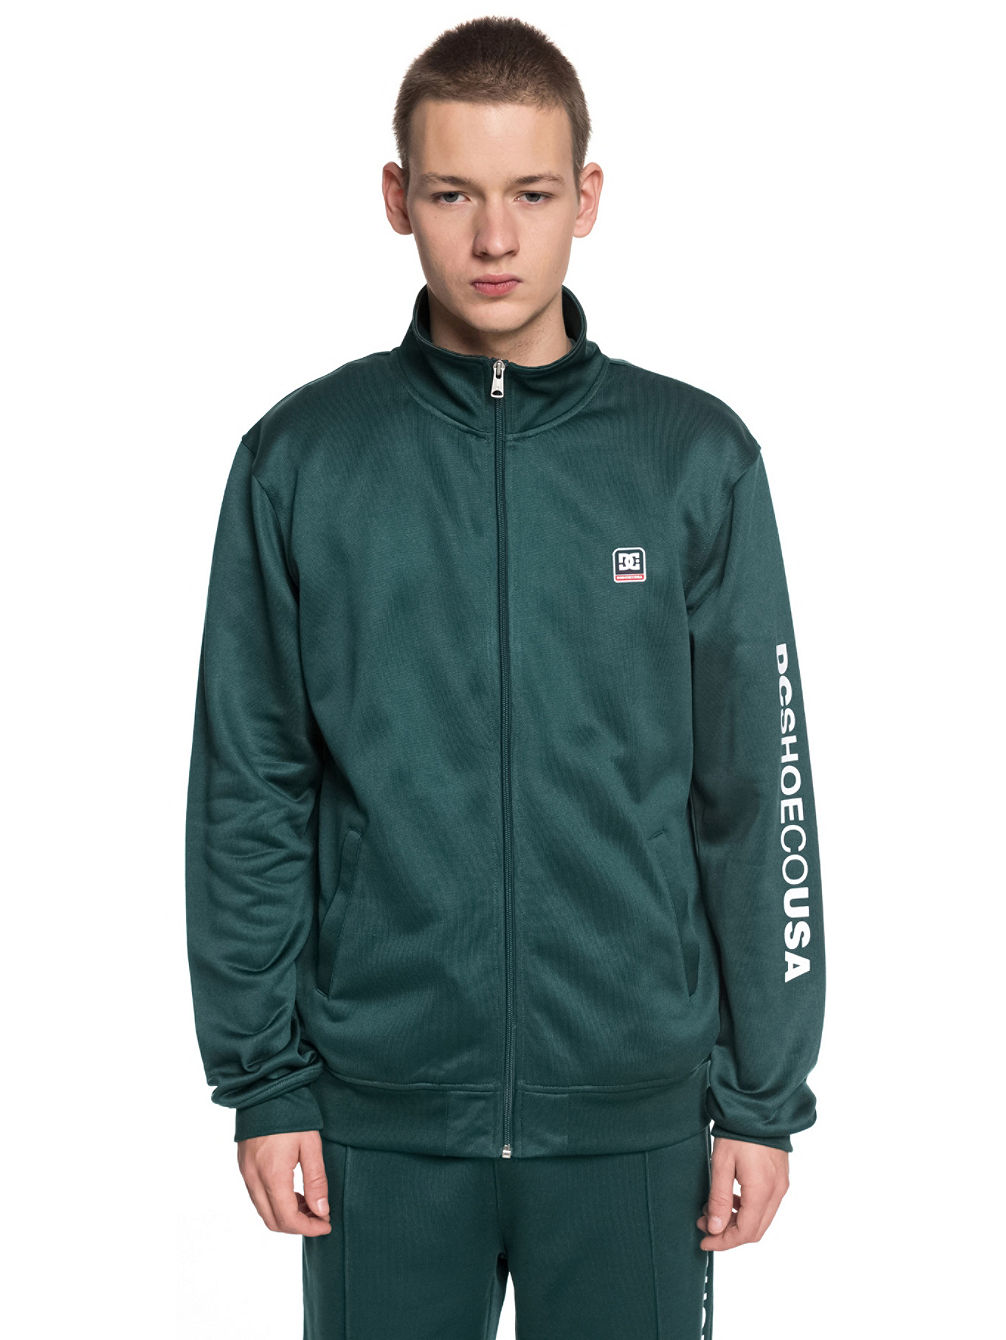 Heggerty Track Jacket